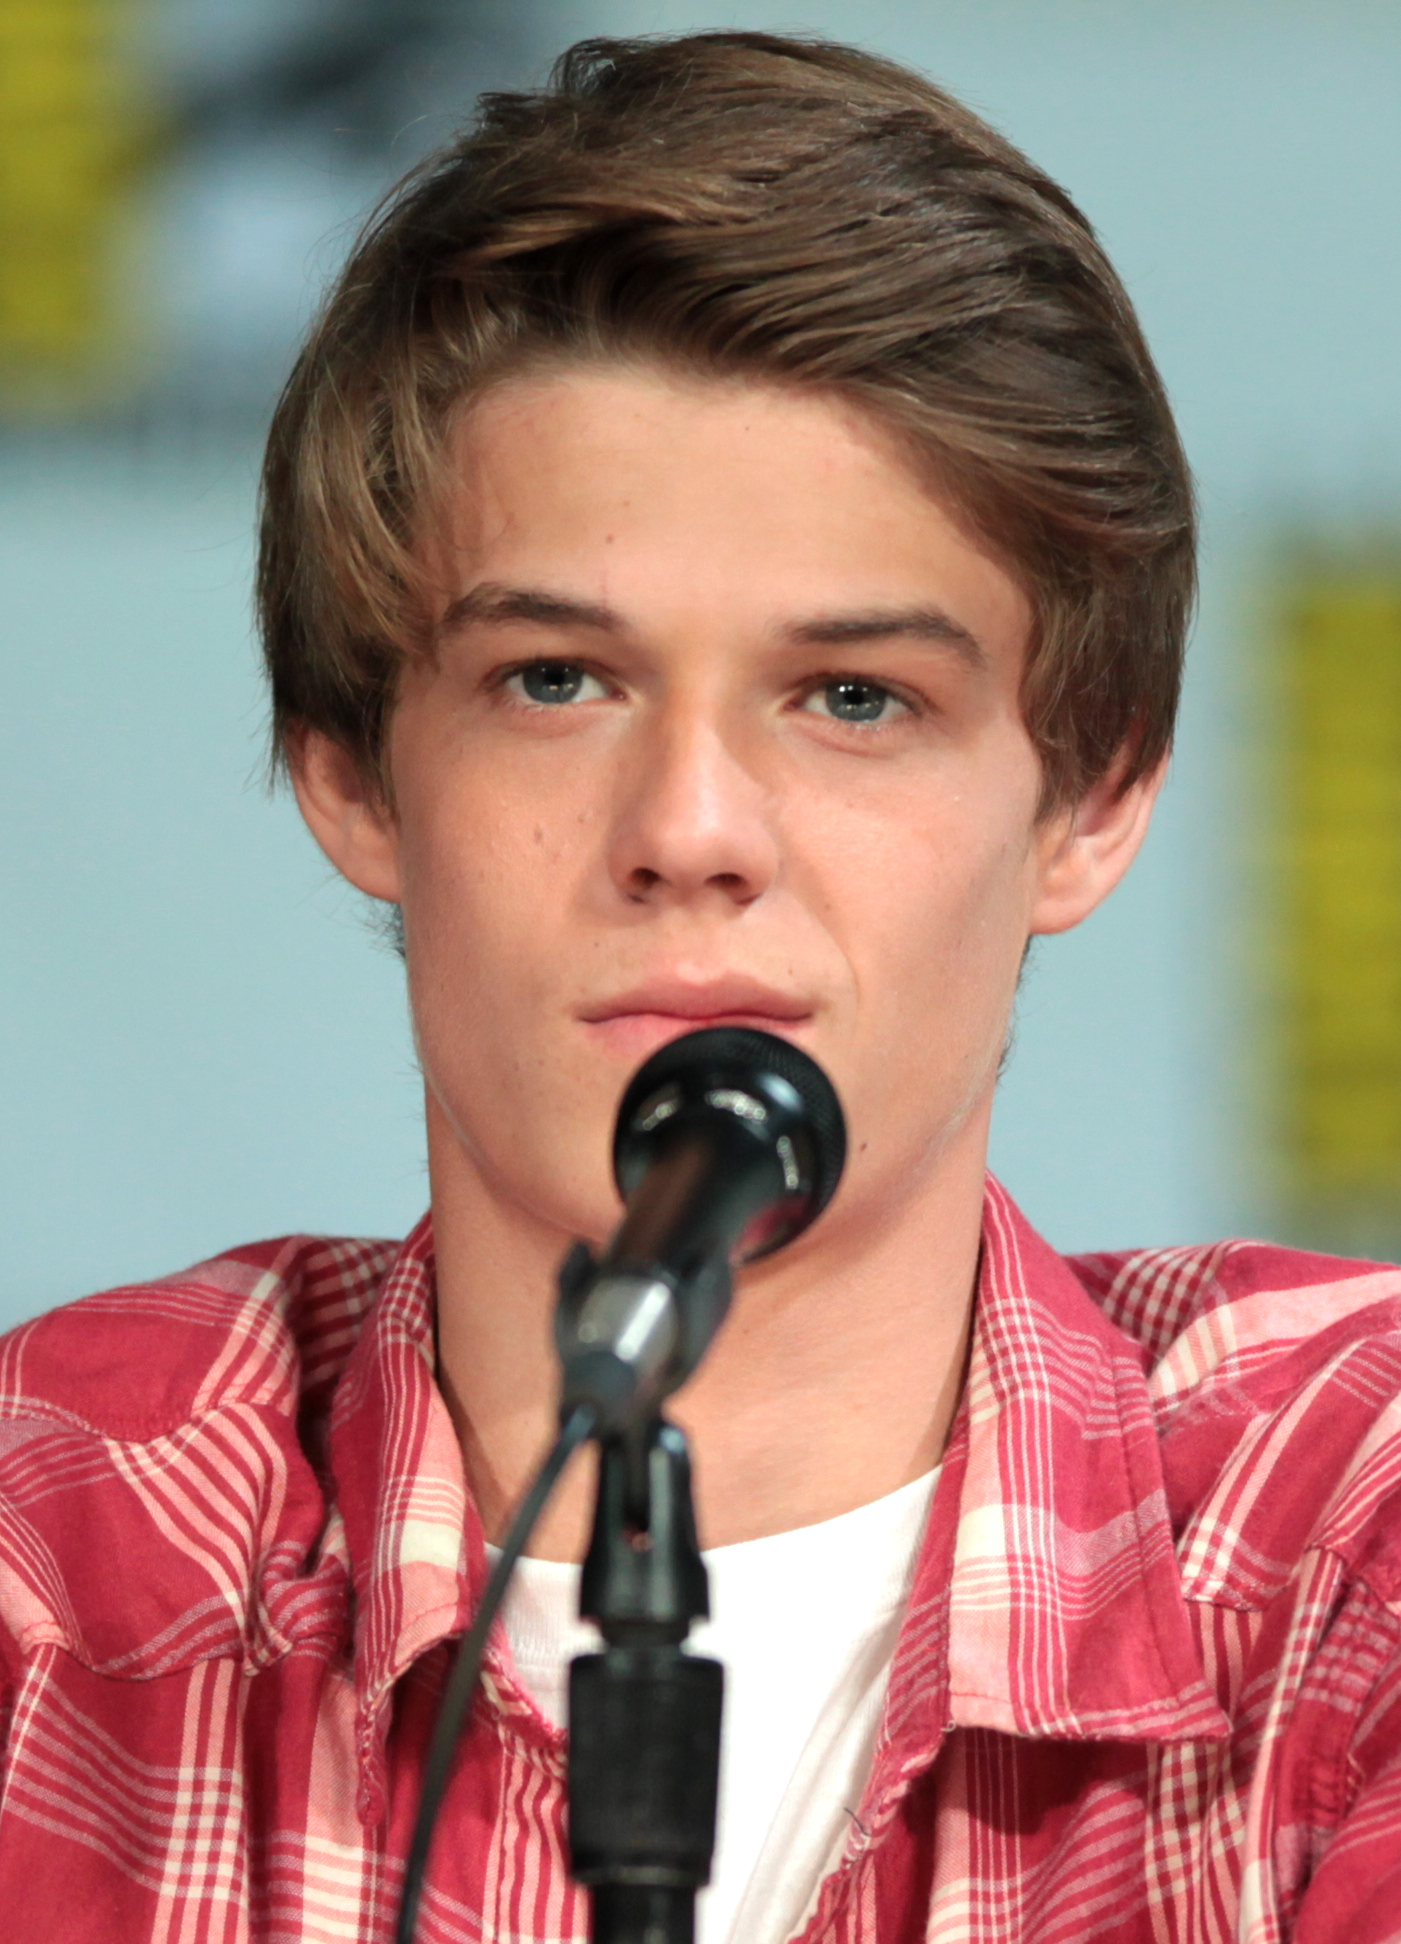 The 22-year old son of father (?) and mother(?) Colin Ford in 2018 photo. Colin Ford earned a  million dollar salary - leaving the net worth at 1.5 million in 2018